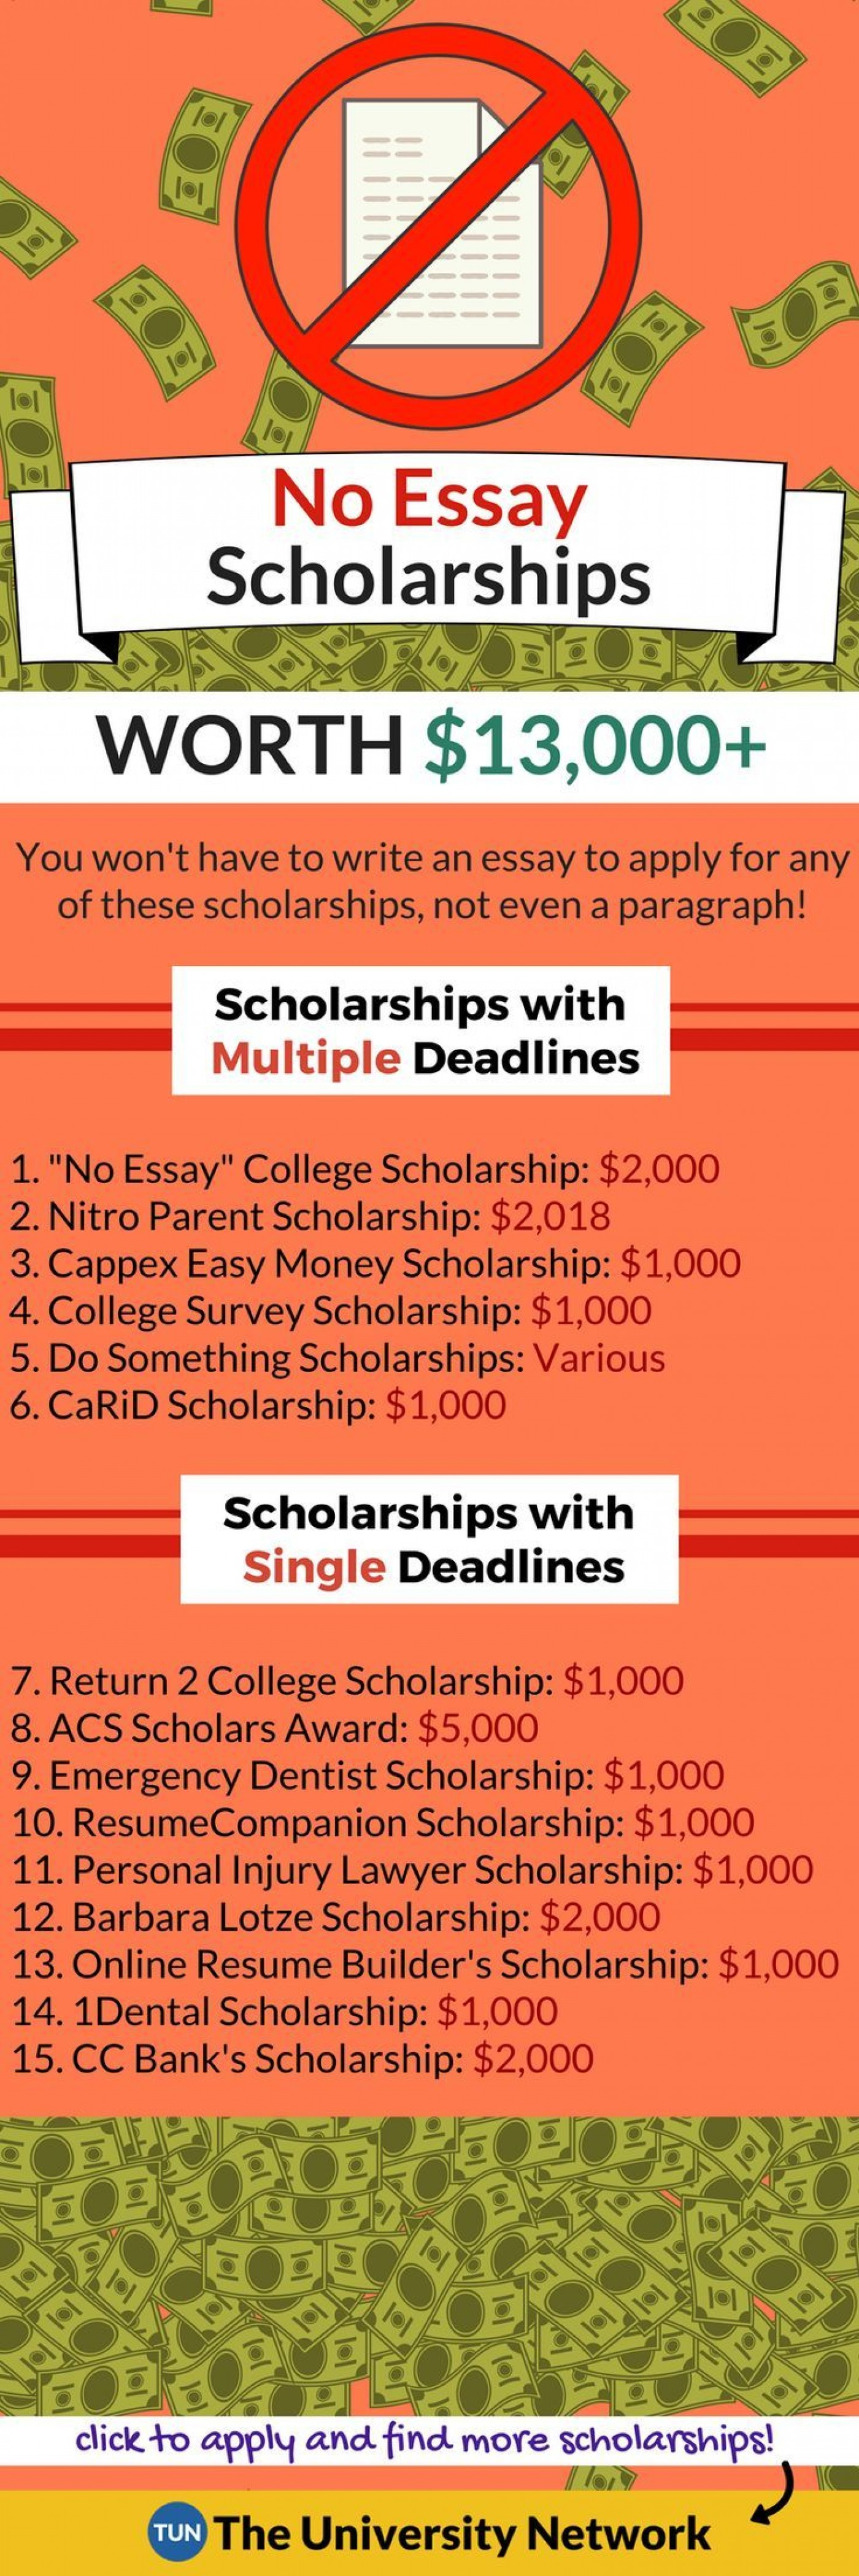 013 Essay Example No Exceptional Scholarships For Undergraduates High School Seniors College Students 2019 1400